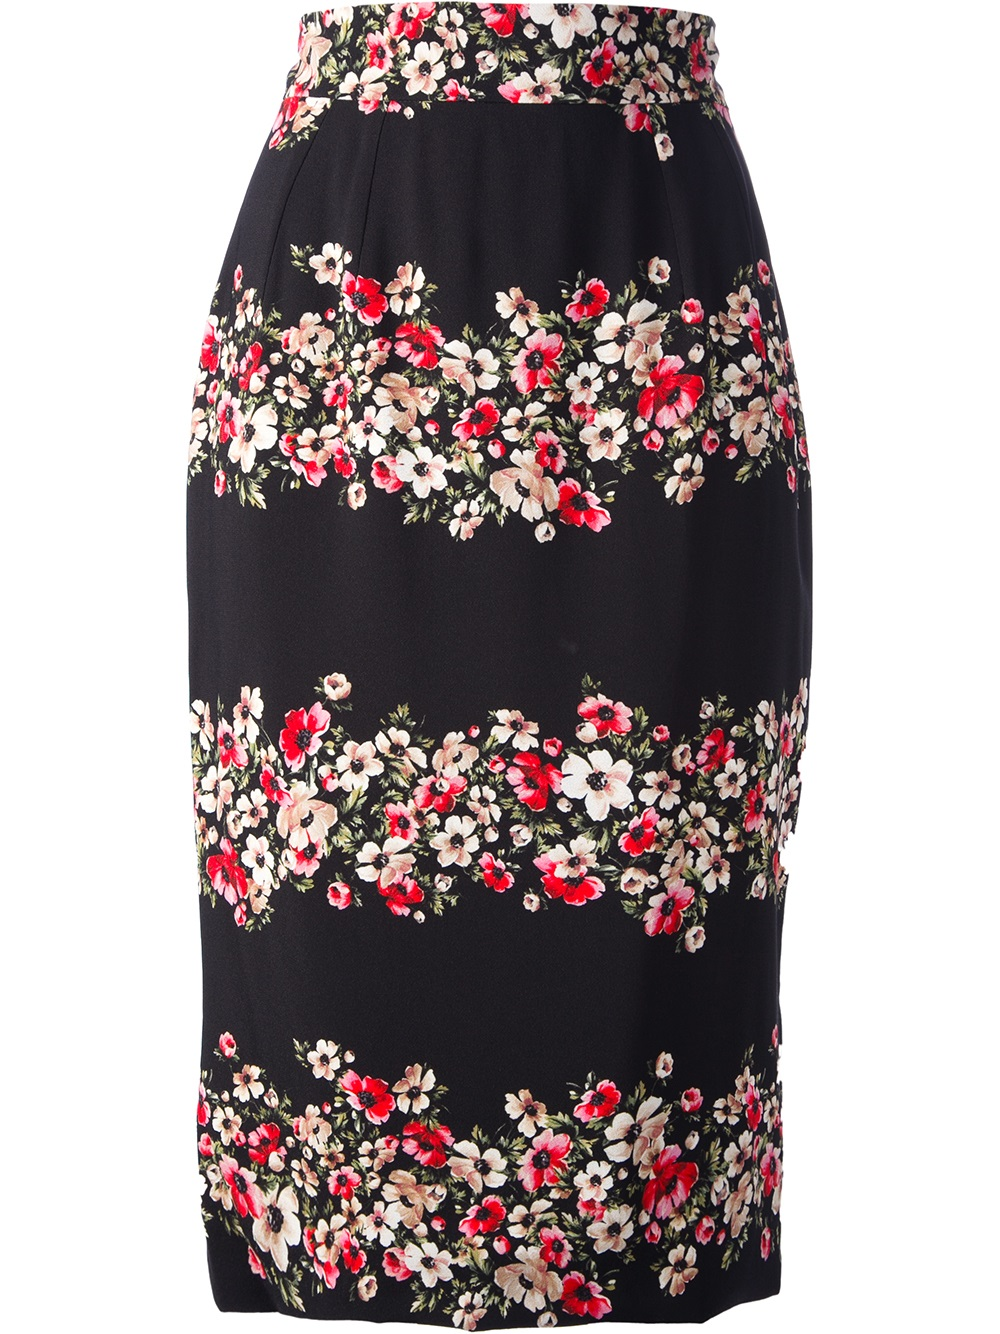 River Island Black Floral Pencil Skirt